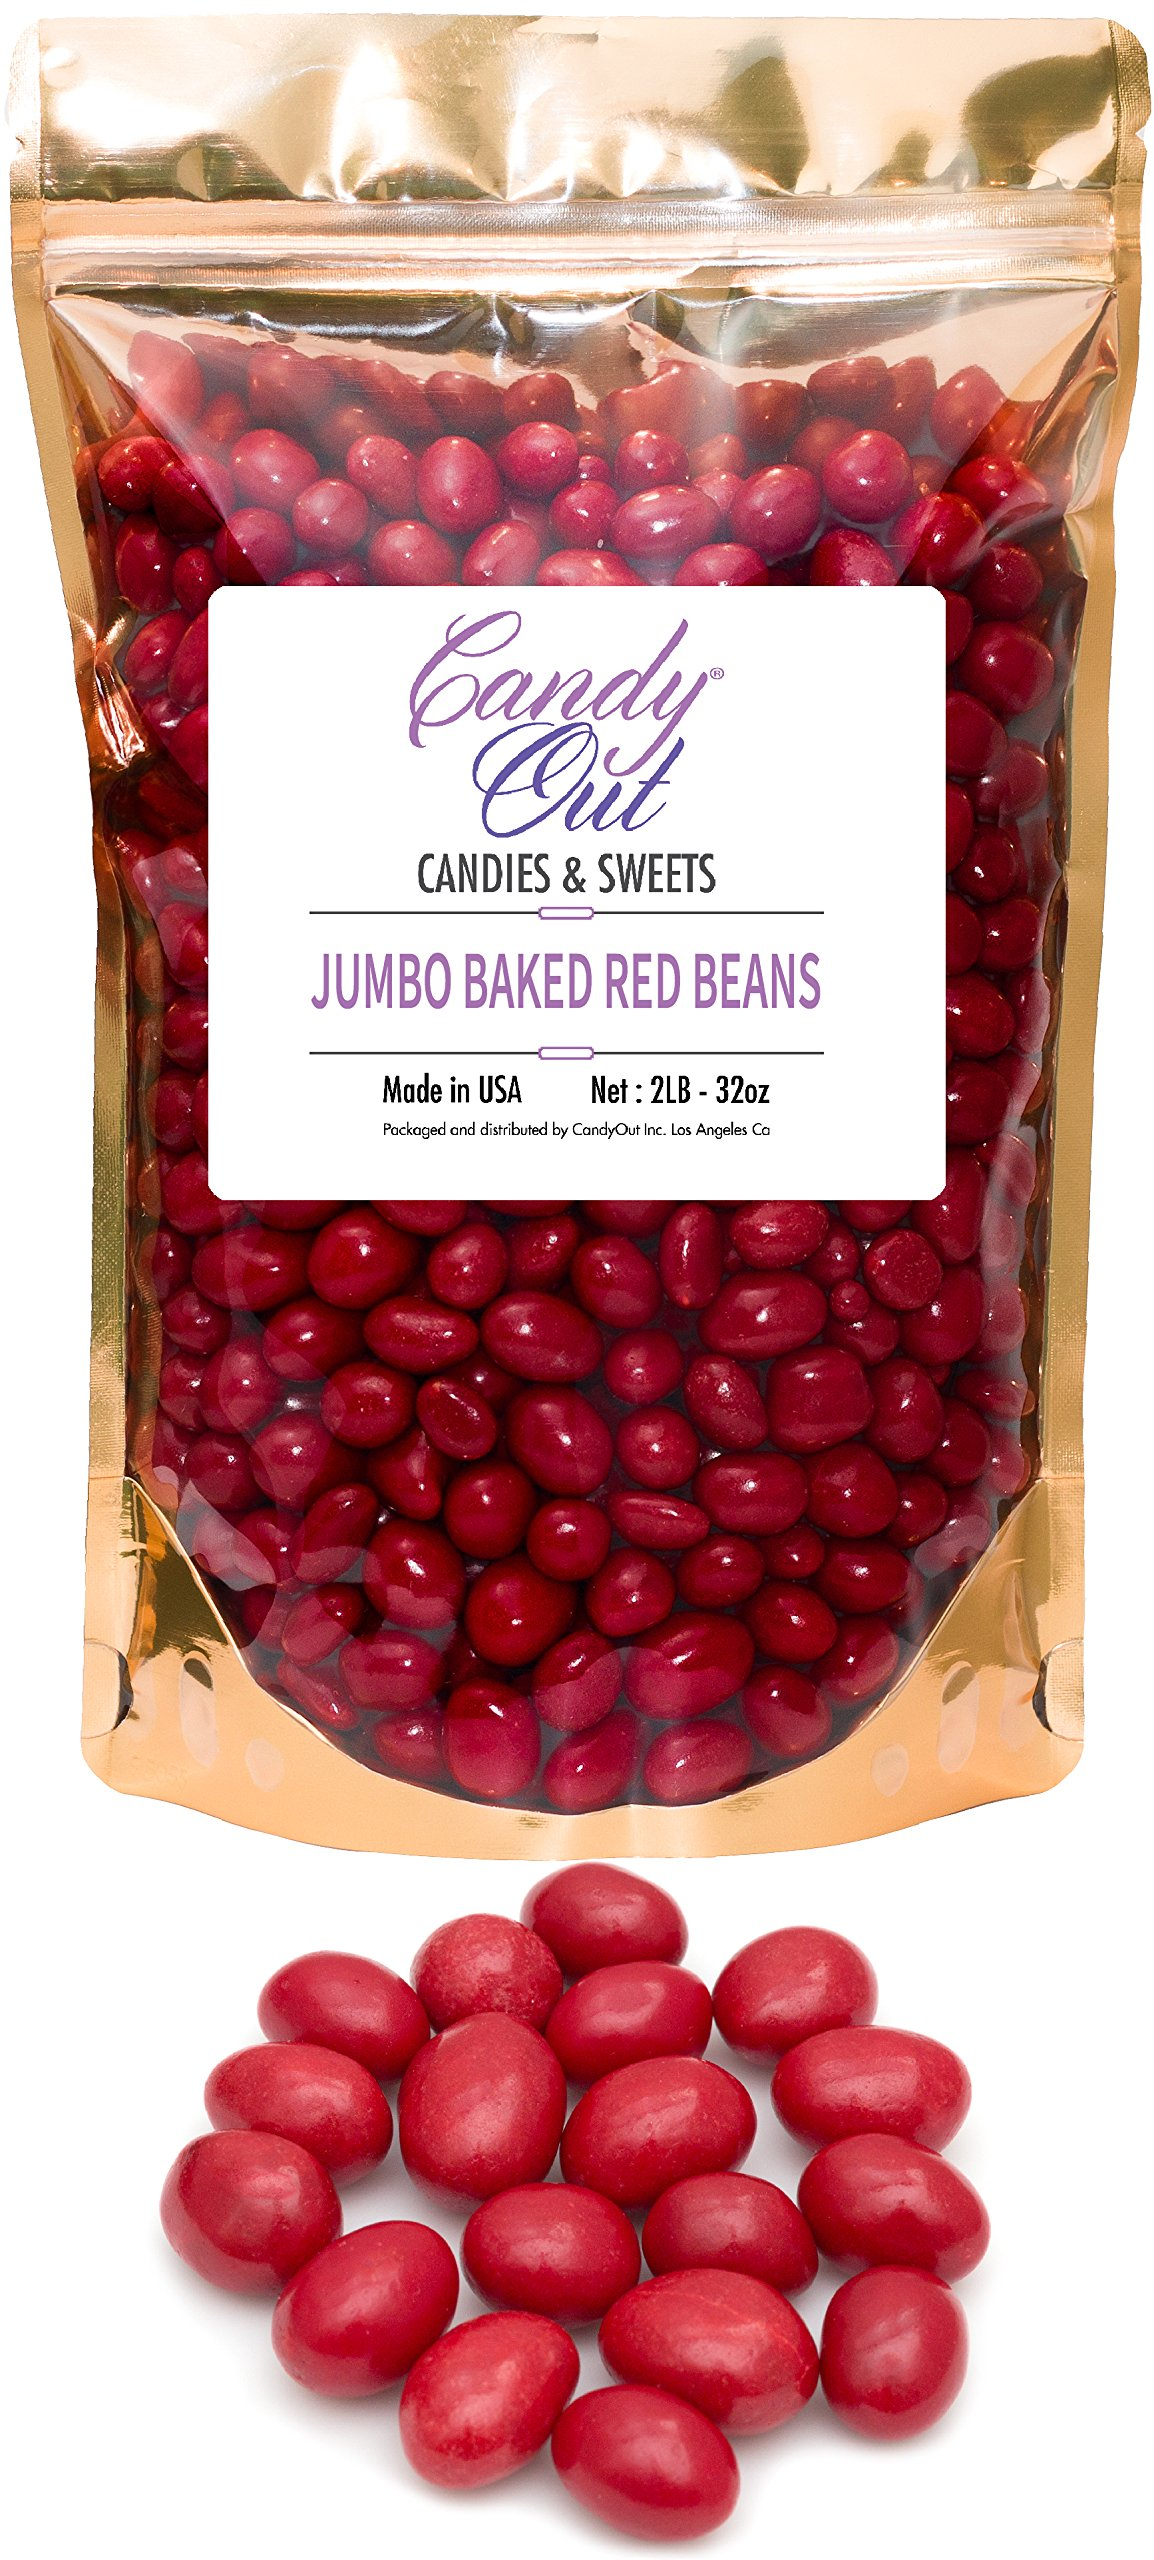 CandyOut Boston Beans Red Candy Coated Peanuts in 2 Pound Resealable Bag